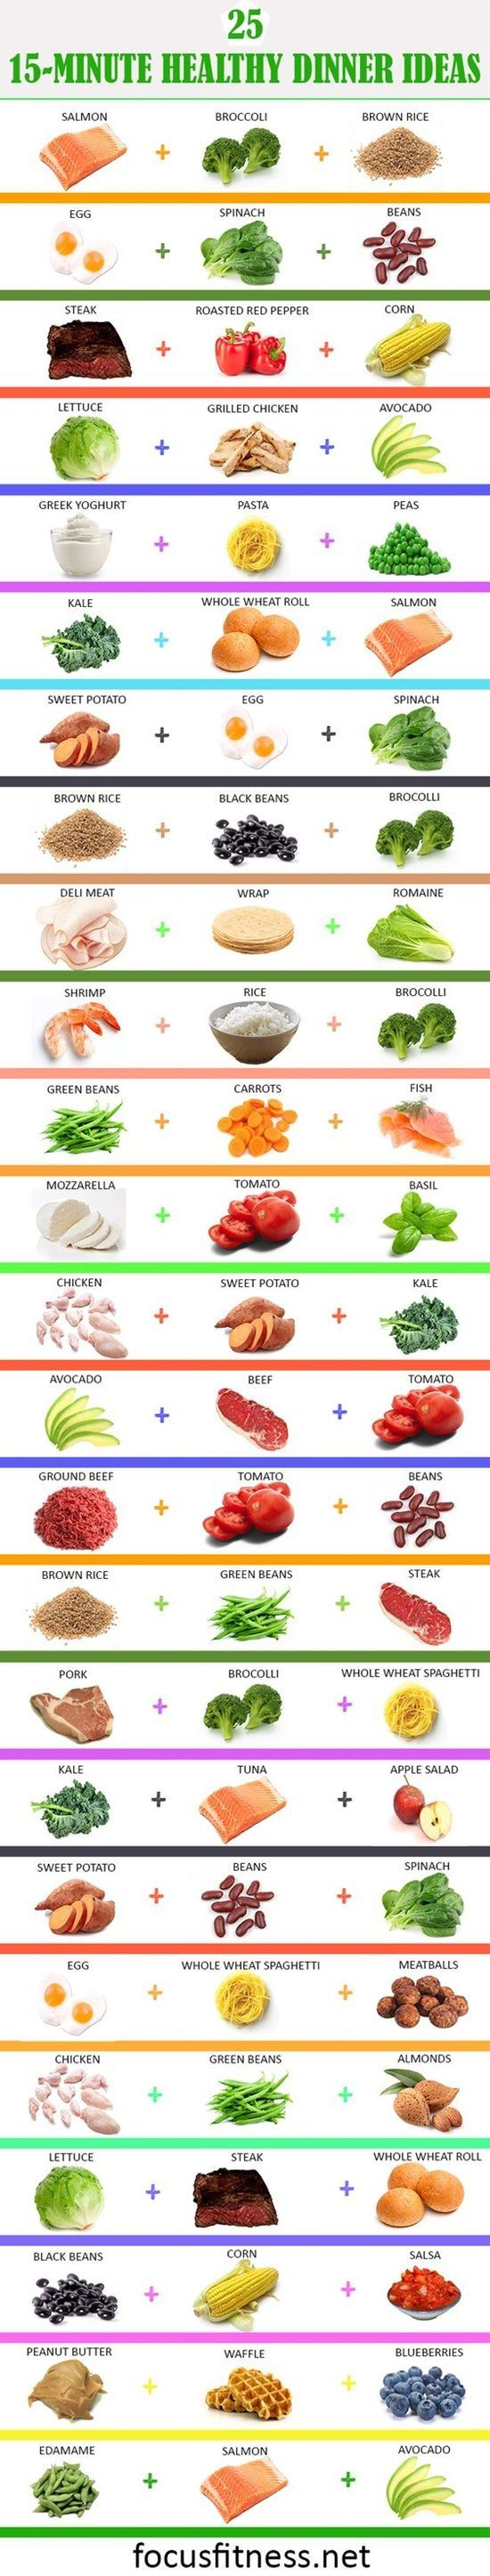 Healthy Dinner Ideas For Weight Loss That Take Less Than 15 Minutes To Make Diet plan for weight loss in two weeks! Do yourself a flat belly!